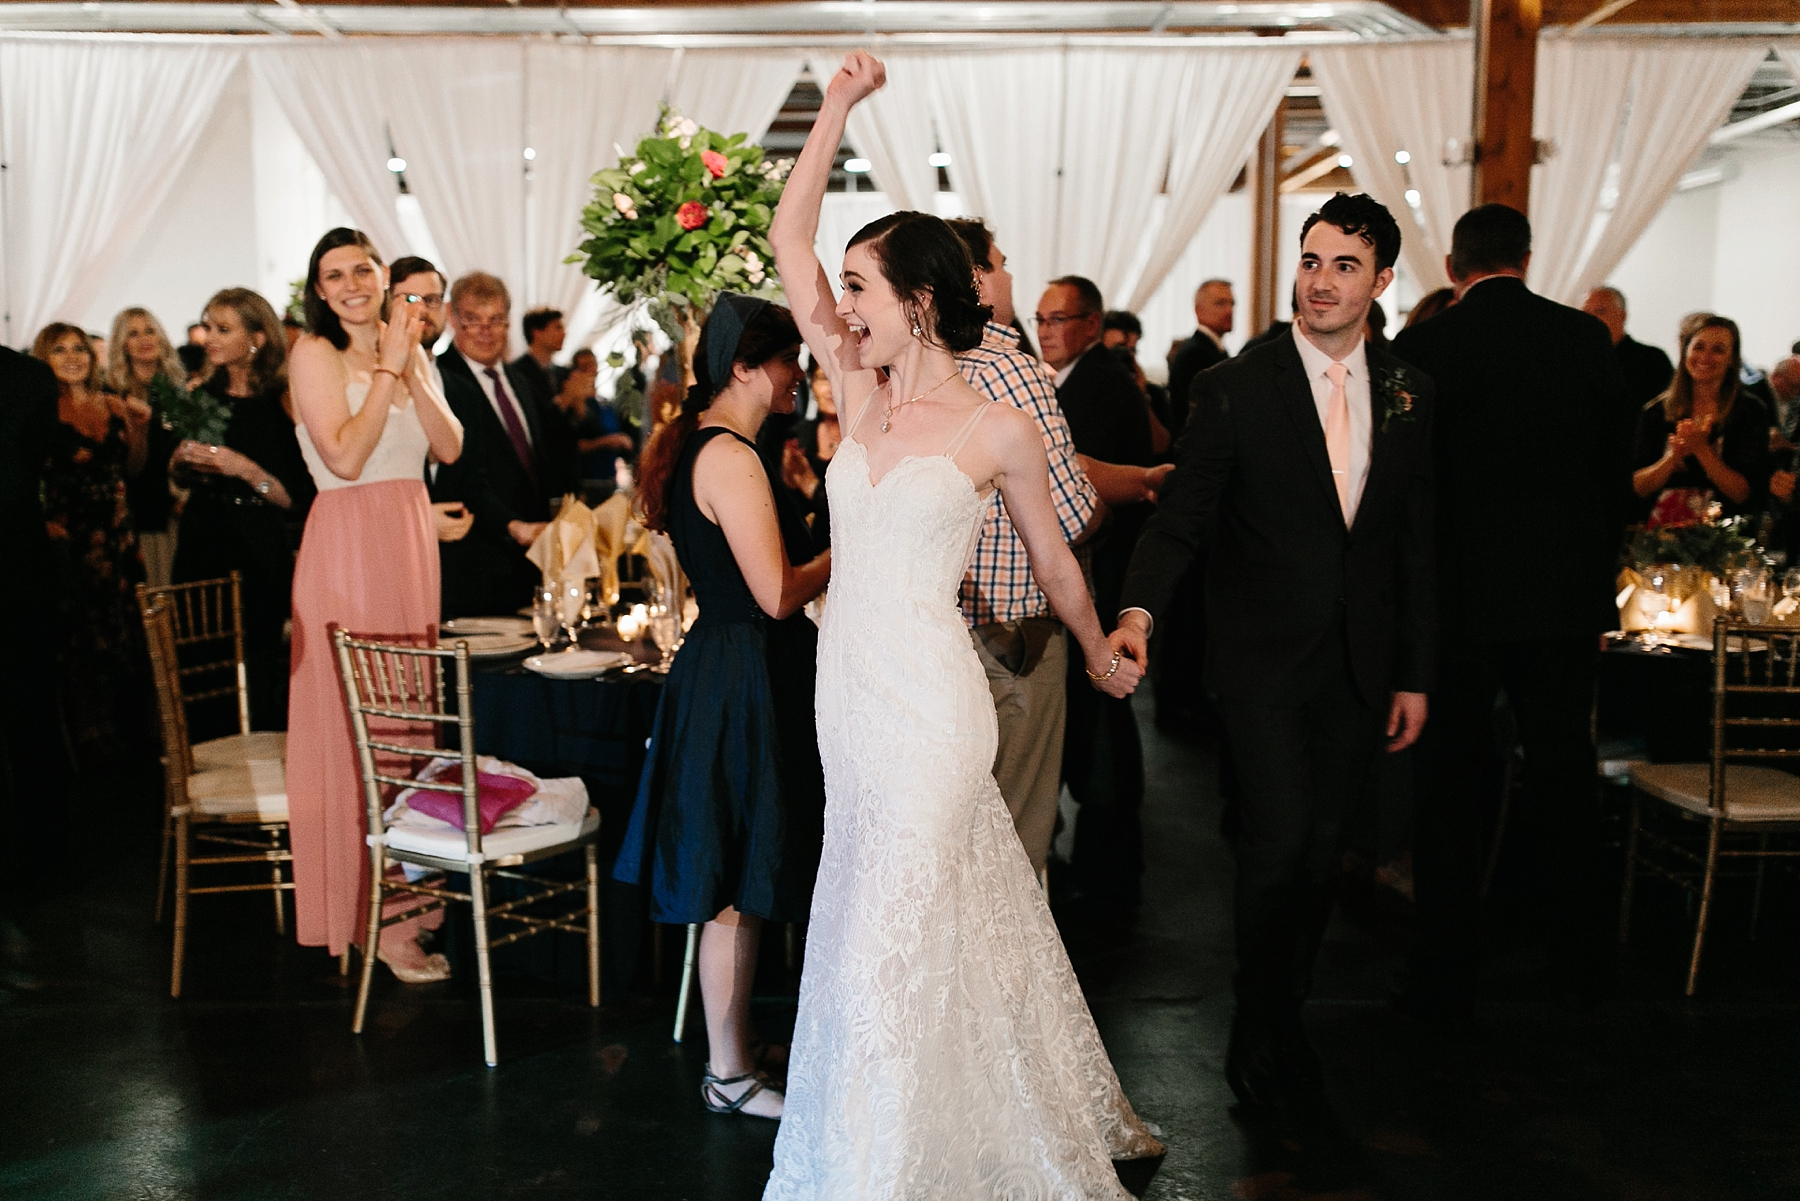 Emily + Caleb _ an elegant, intentional, industrial style wedding with navy + gold accents at 6500 in Dallas, TX by North Texas Wedding Photographer Rachel Meagan Photography _ 133